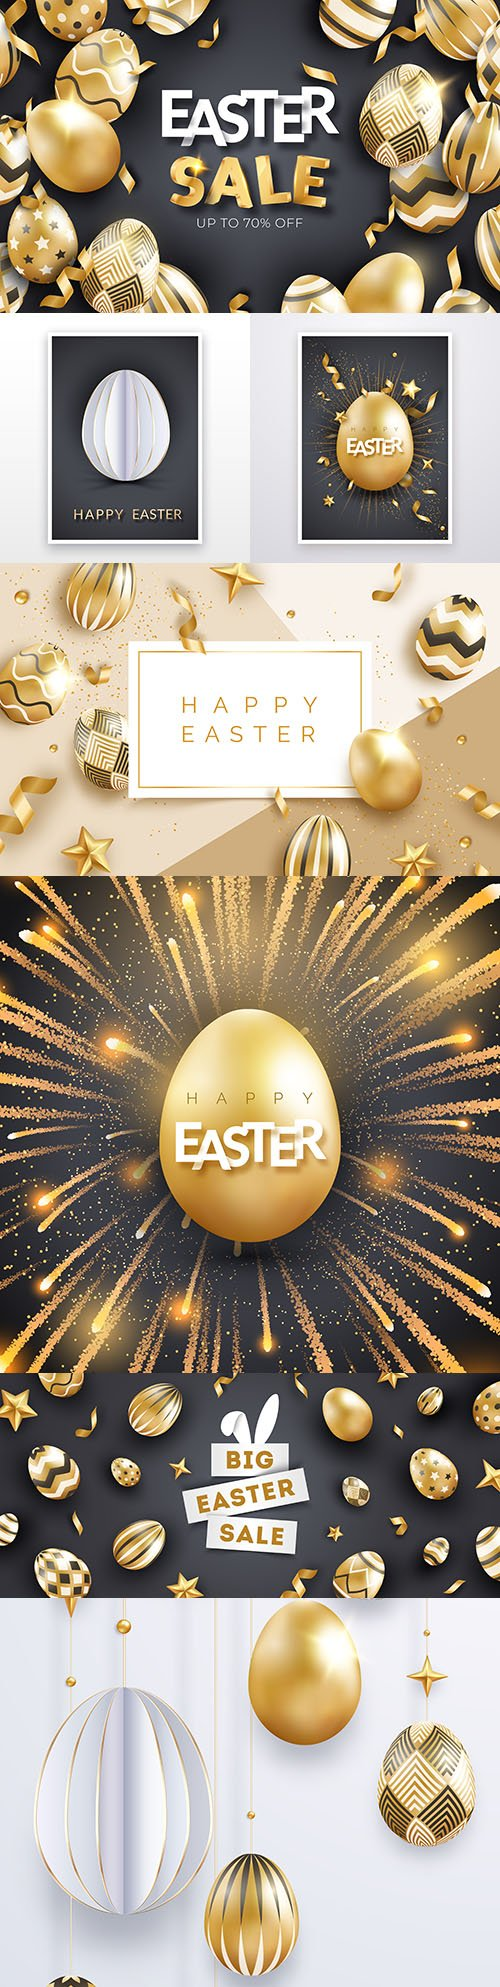 Easter postcard with realistic gold decorated eggs